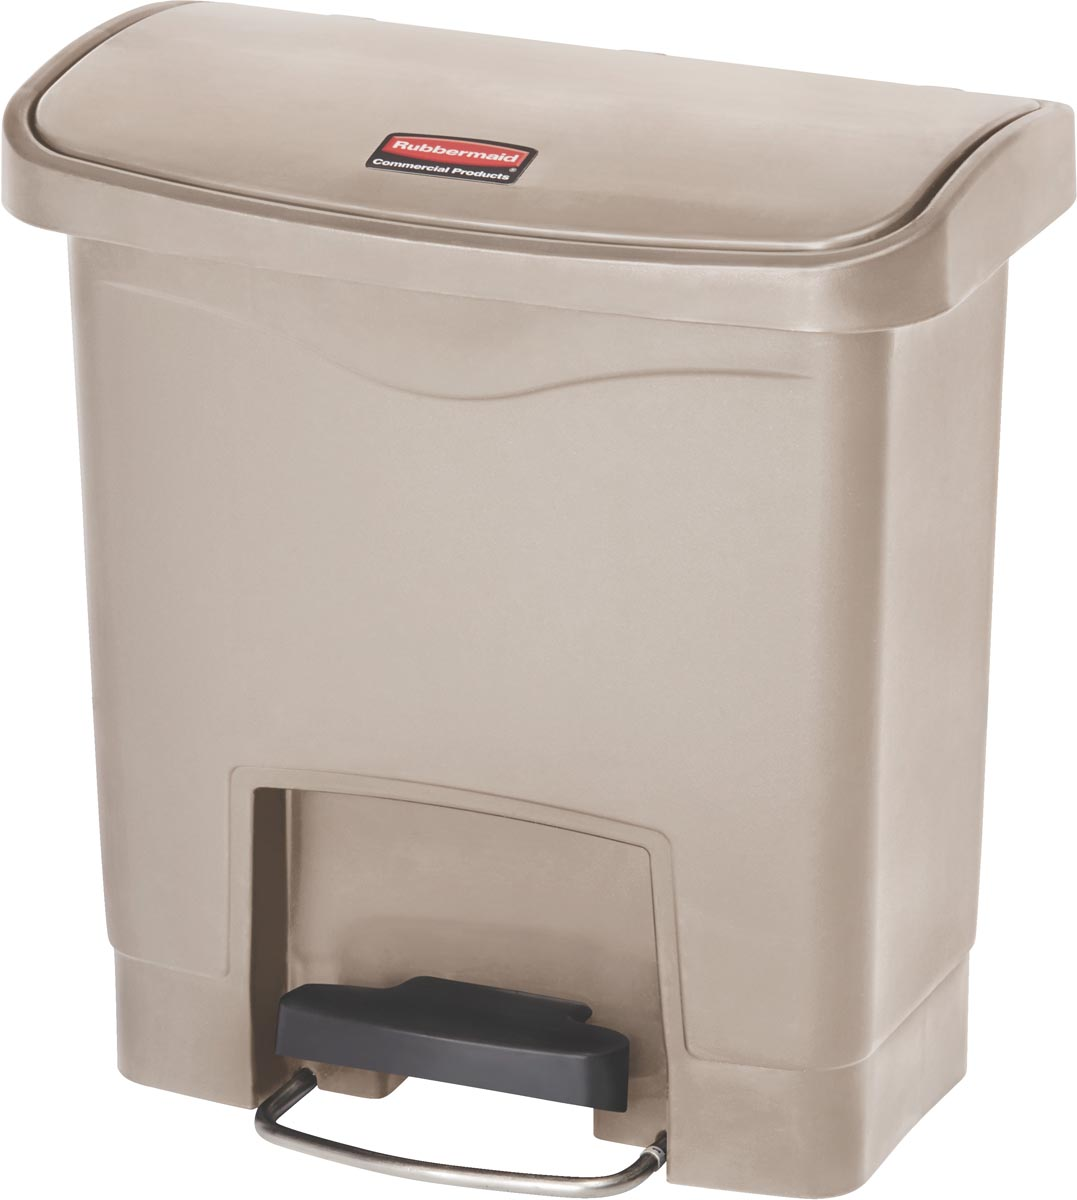 Rubbermaid Slim Jim Step-On-container Front Step, beige, 15 l